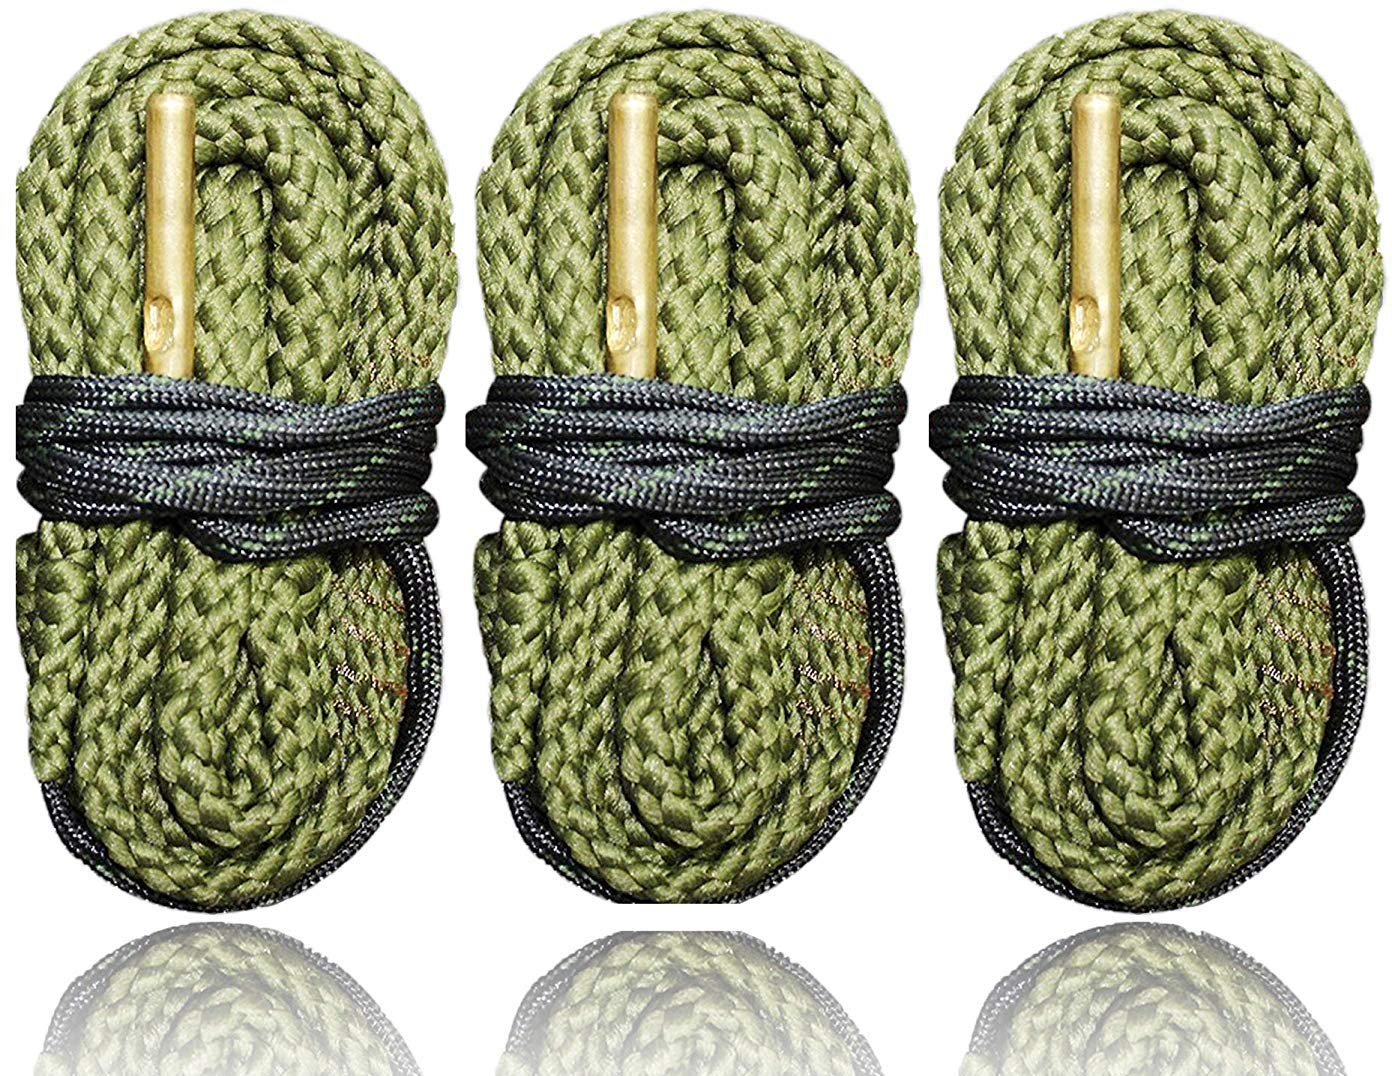 3 Pack of 9 MM Pistol Bore Cleaning Snakes, Completely Washable, Very Tough - Quickly Cleans Your Guns Bore - Fits Most 9mm .380 .38 and .357 Pistols - Ships from US Cobra Bore Snakes by Big Country